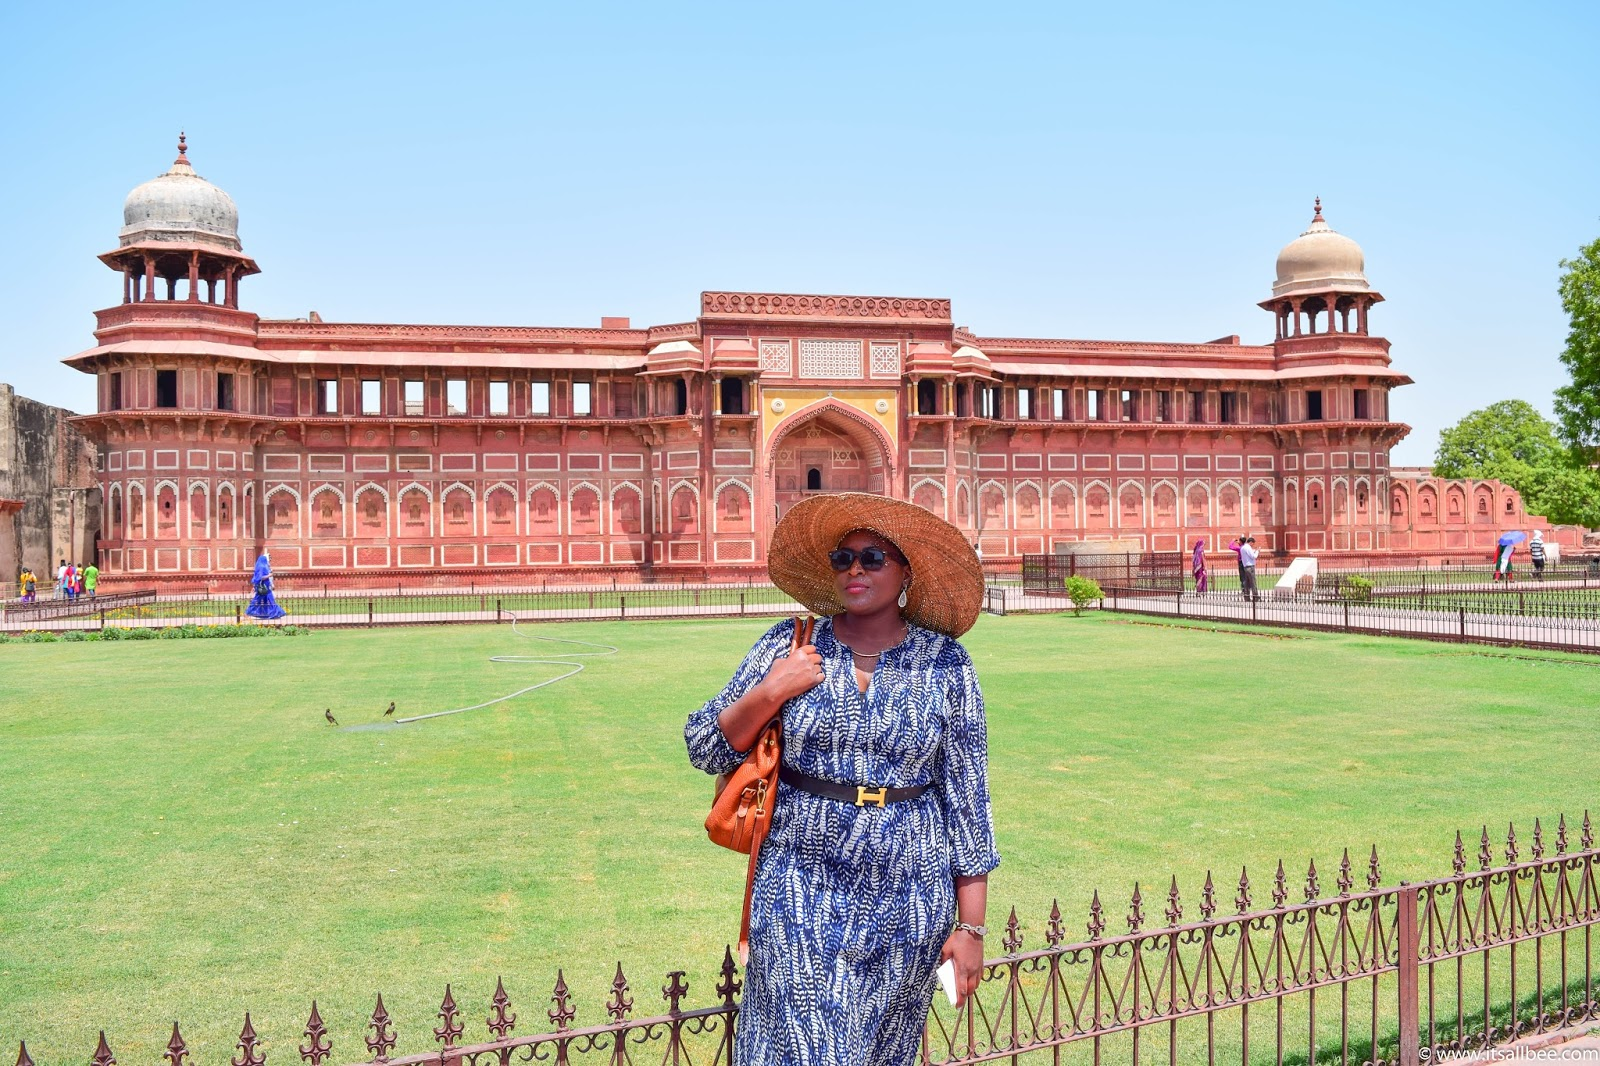 Visiting The Agra Fort - Photo by Bianca Malata - www.itsallbee.com